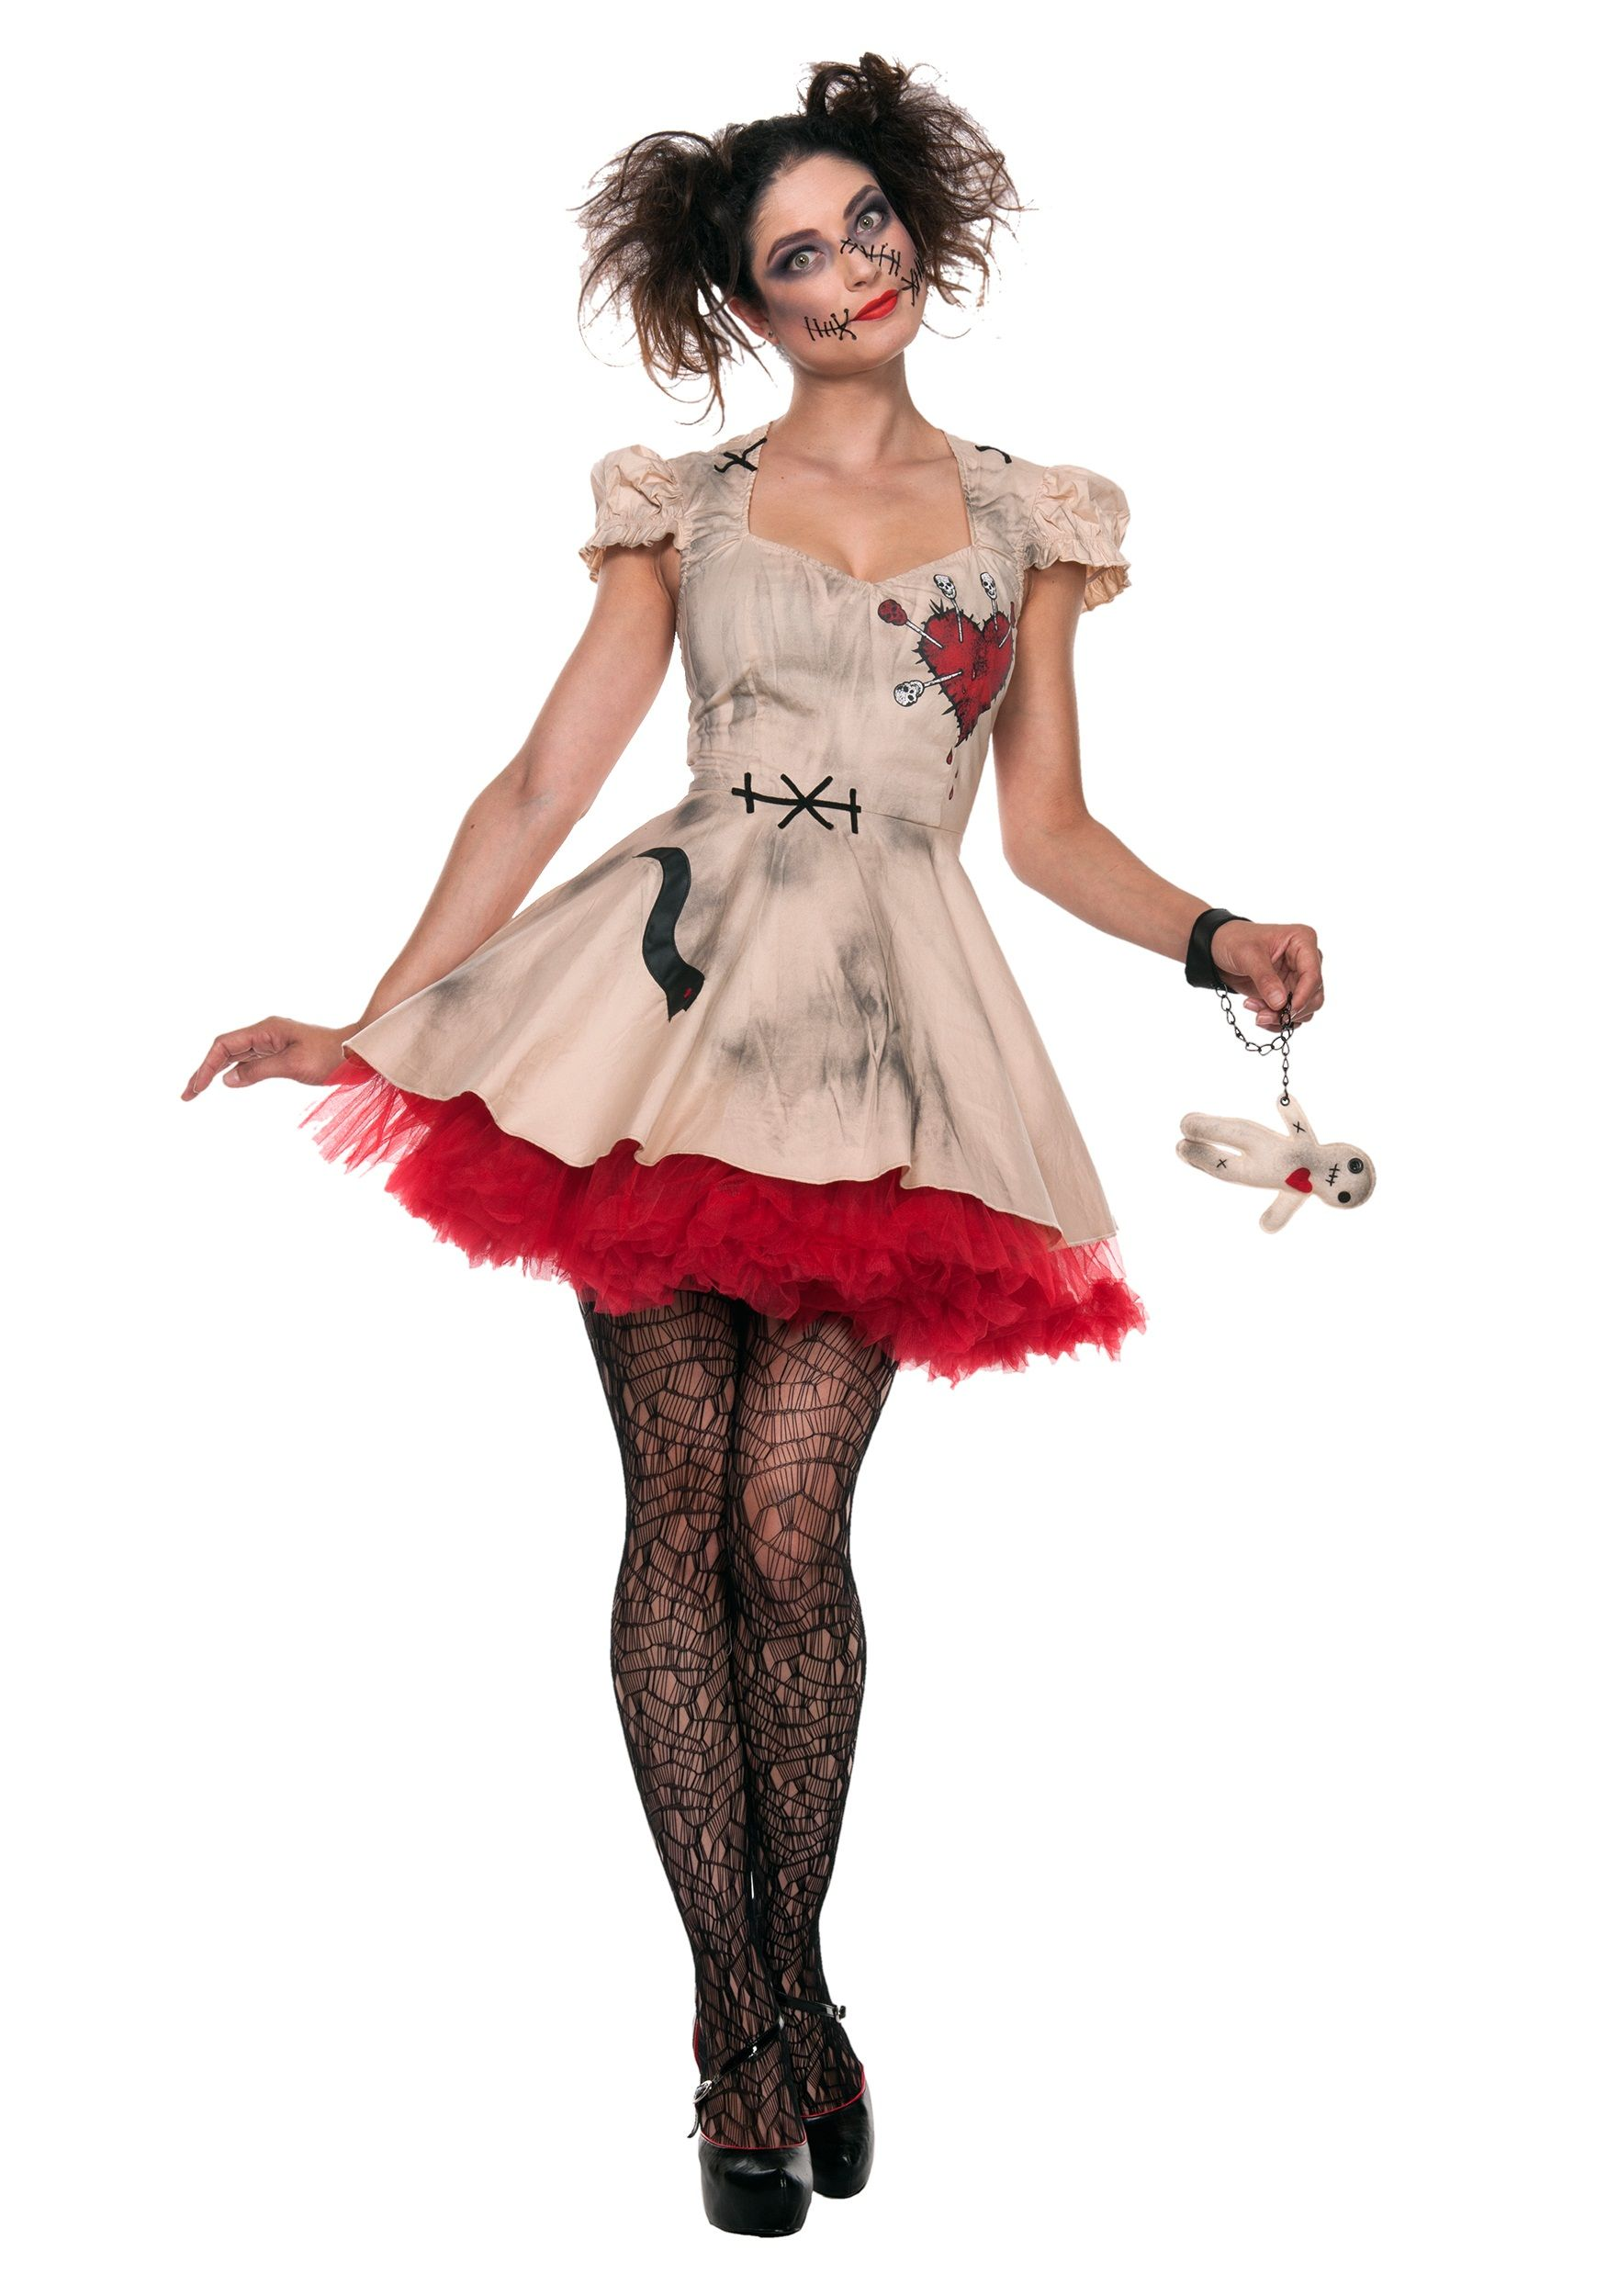 Coolest Voodoo Doll Costume | Voodoo dolls, Costumes and Homemade